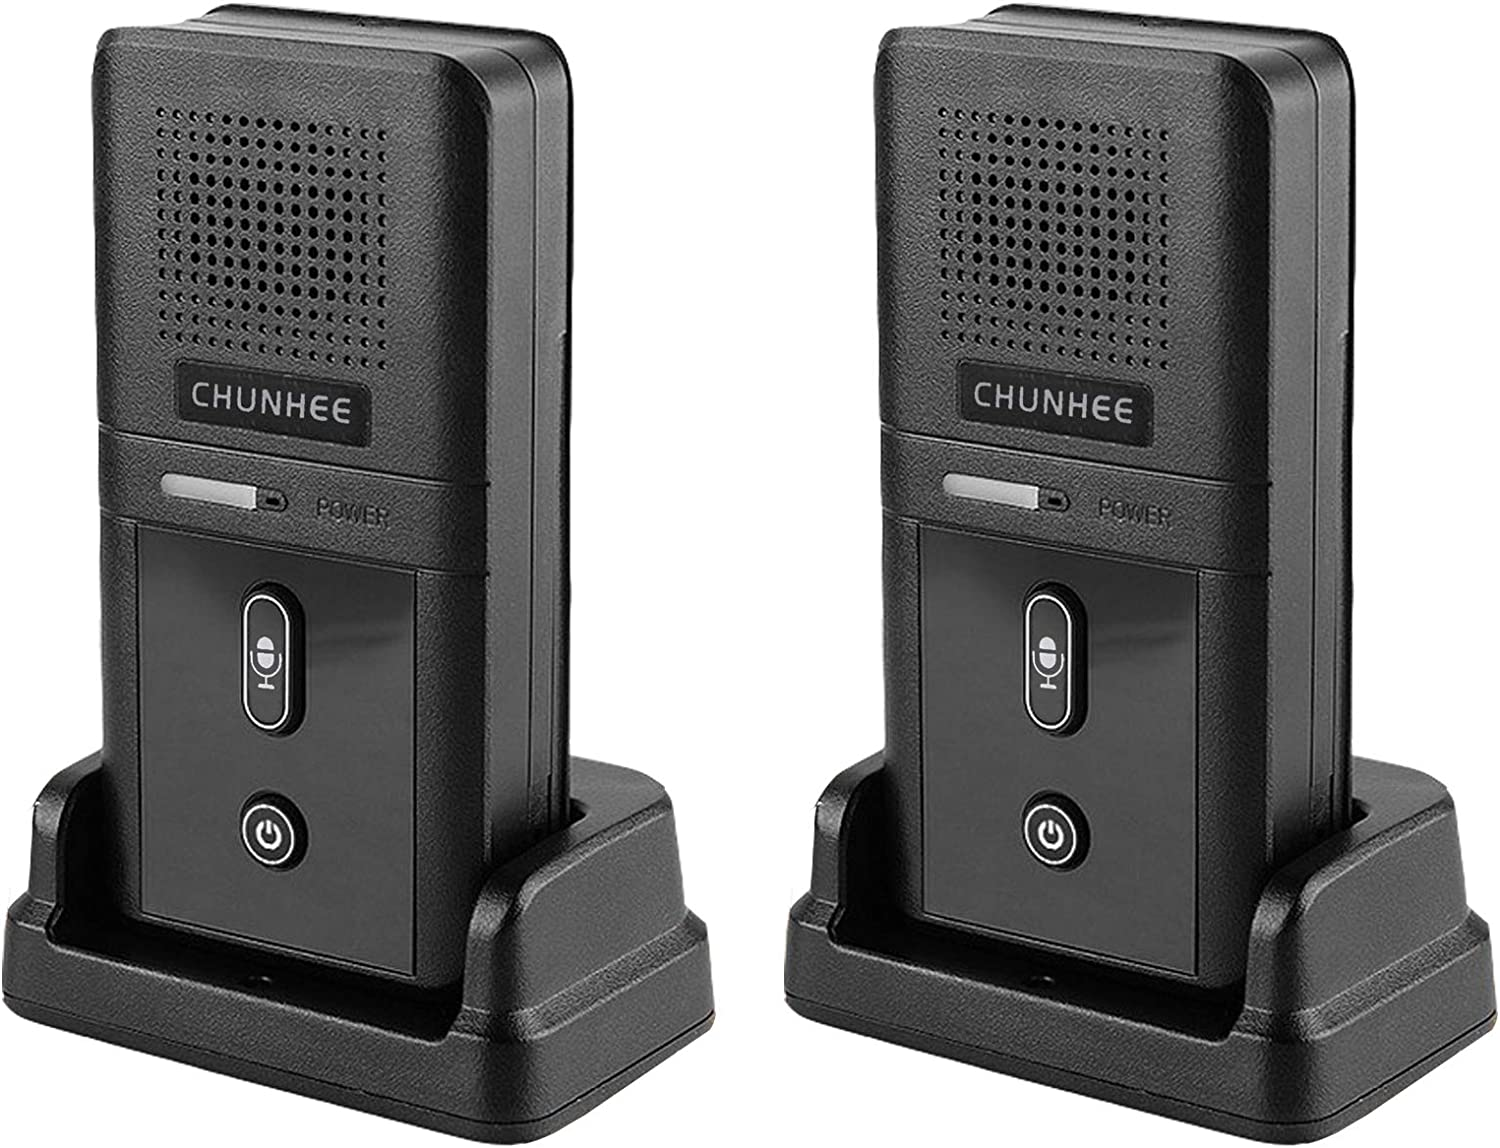 Chunhee Wireless Home Intercom System for Elderly, Two-Way Communication Caregiver Pager Nurse Calling System for Patient/Senior/Disabled/Nursery/Pregnant